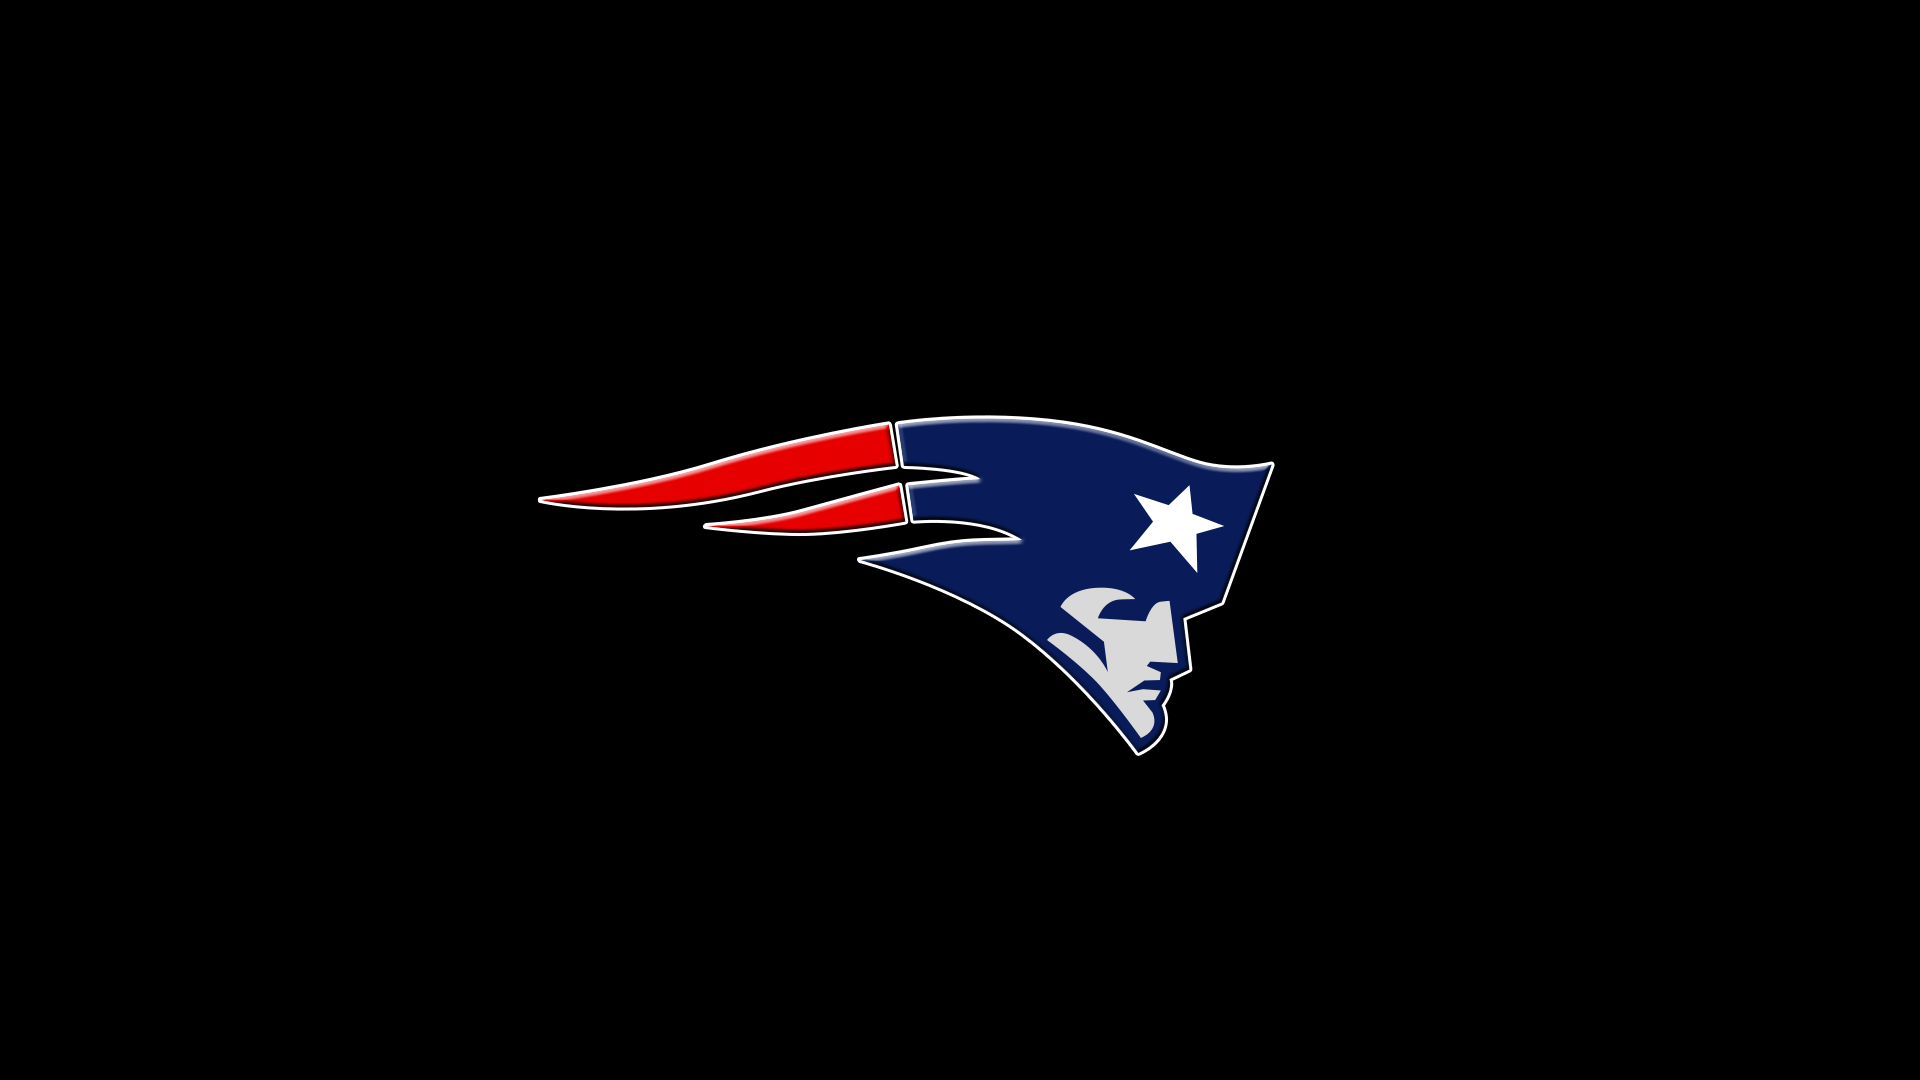 New England Patriots Wallpapers Archives - HDWallSource ...